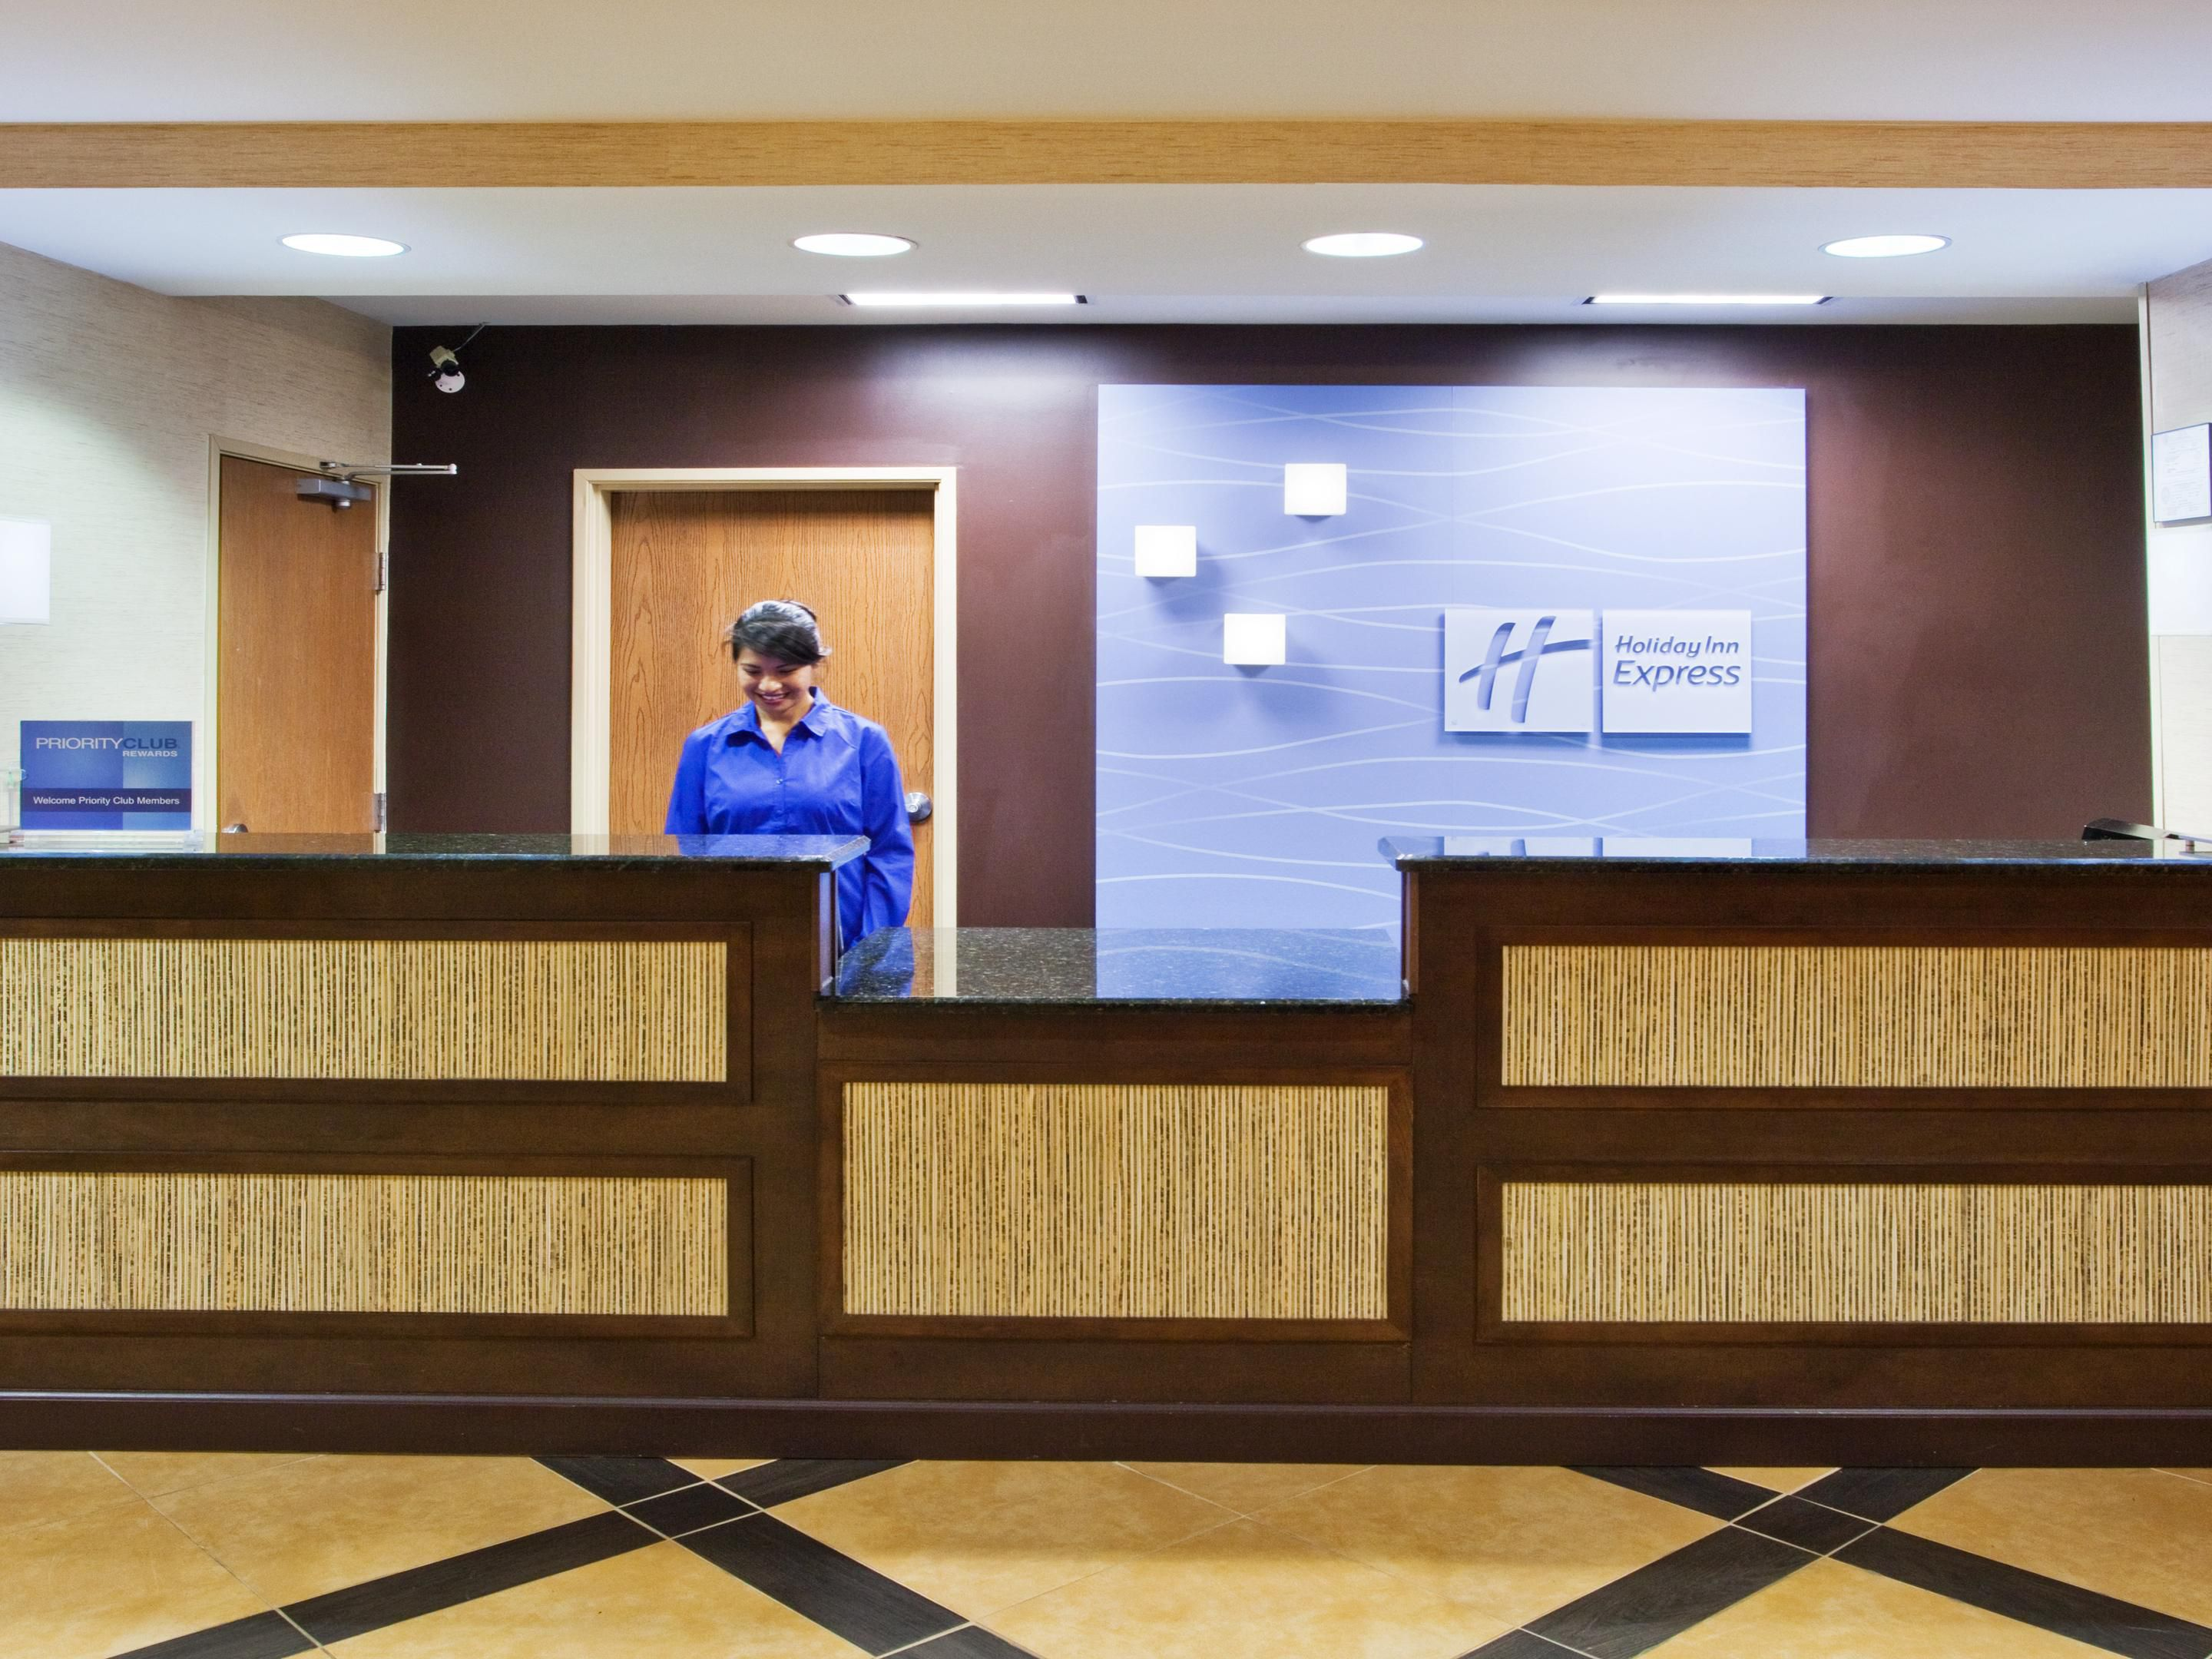 Our friendly, dedicated staff is here to make your stay enjoyable!